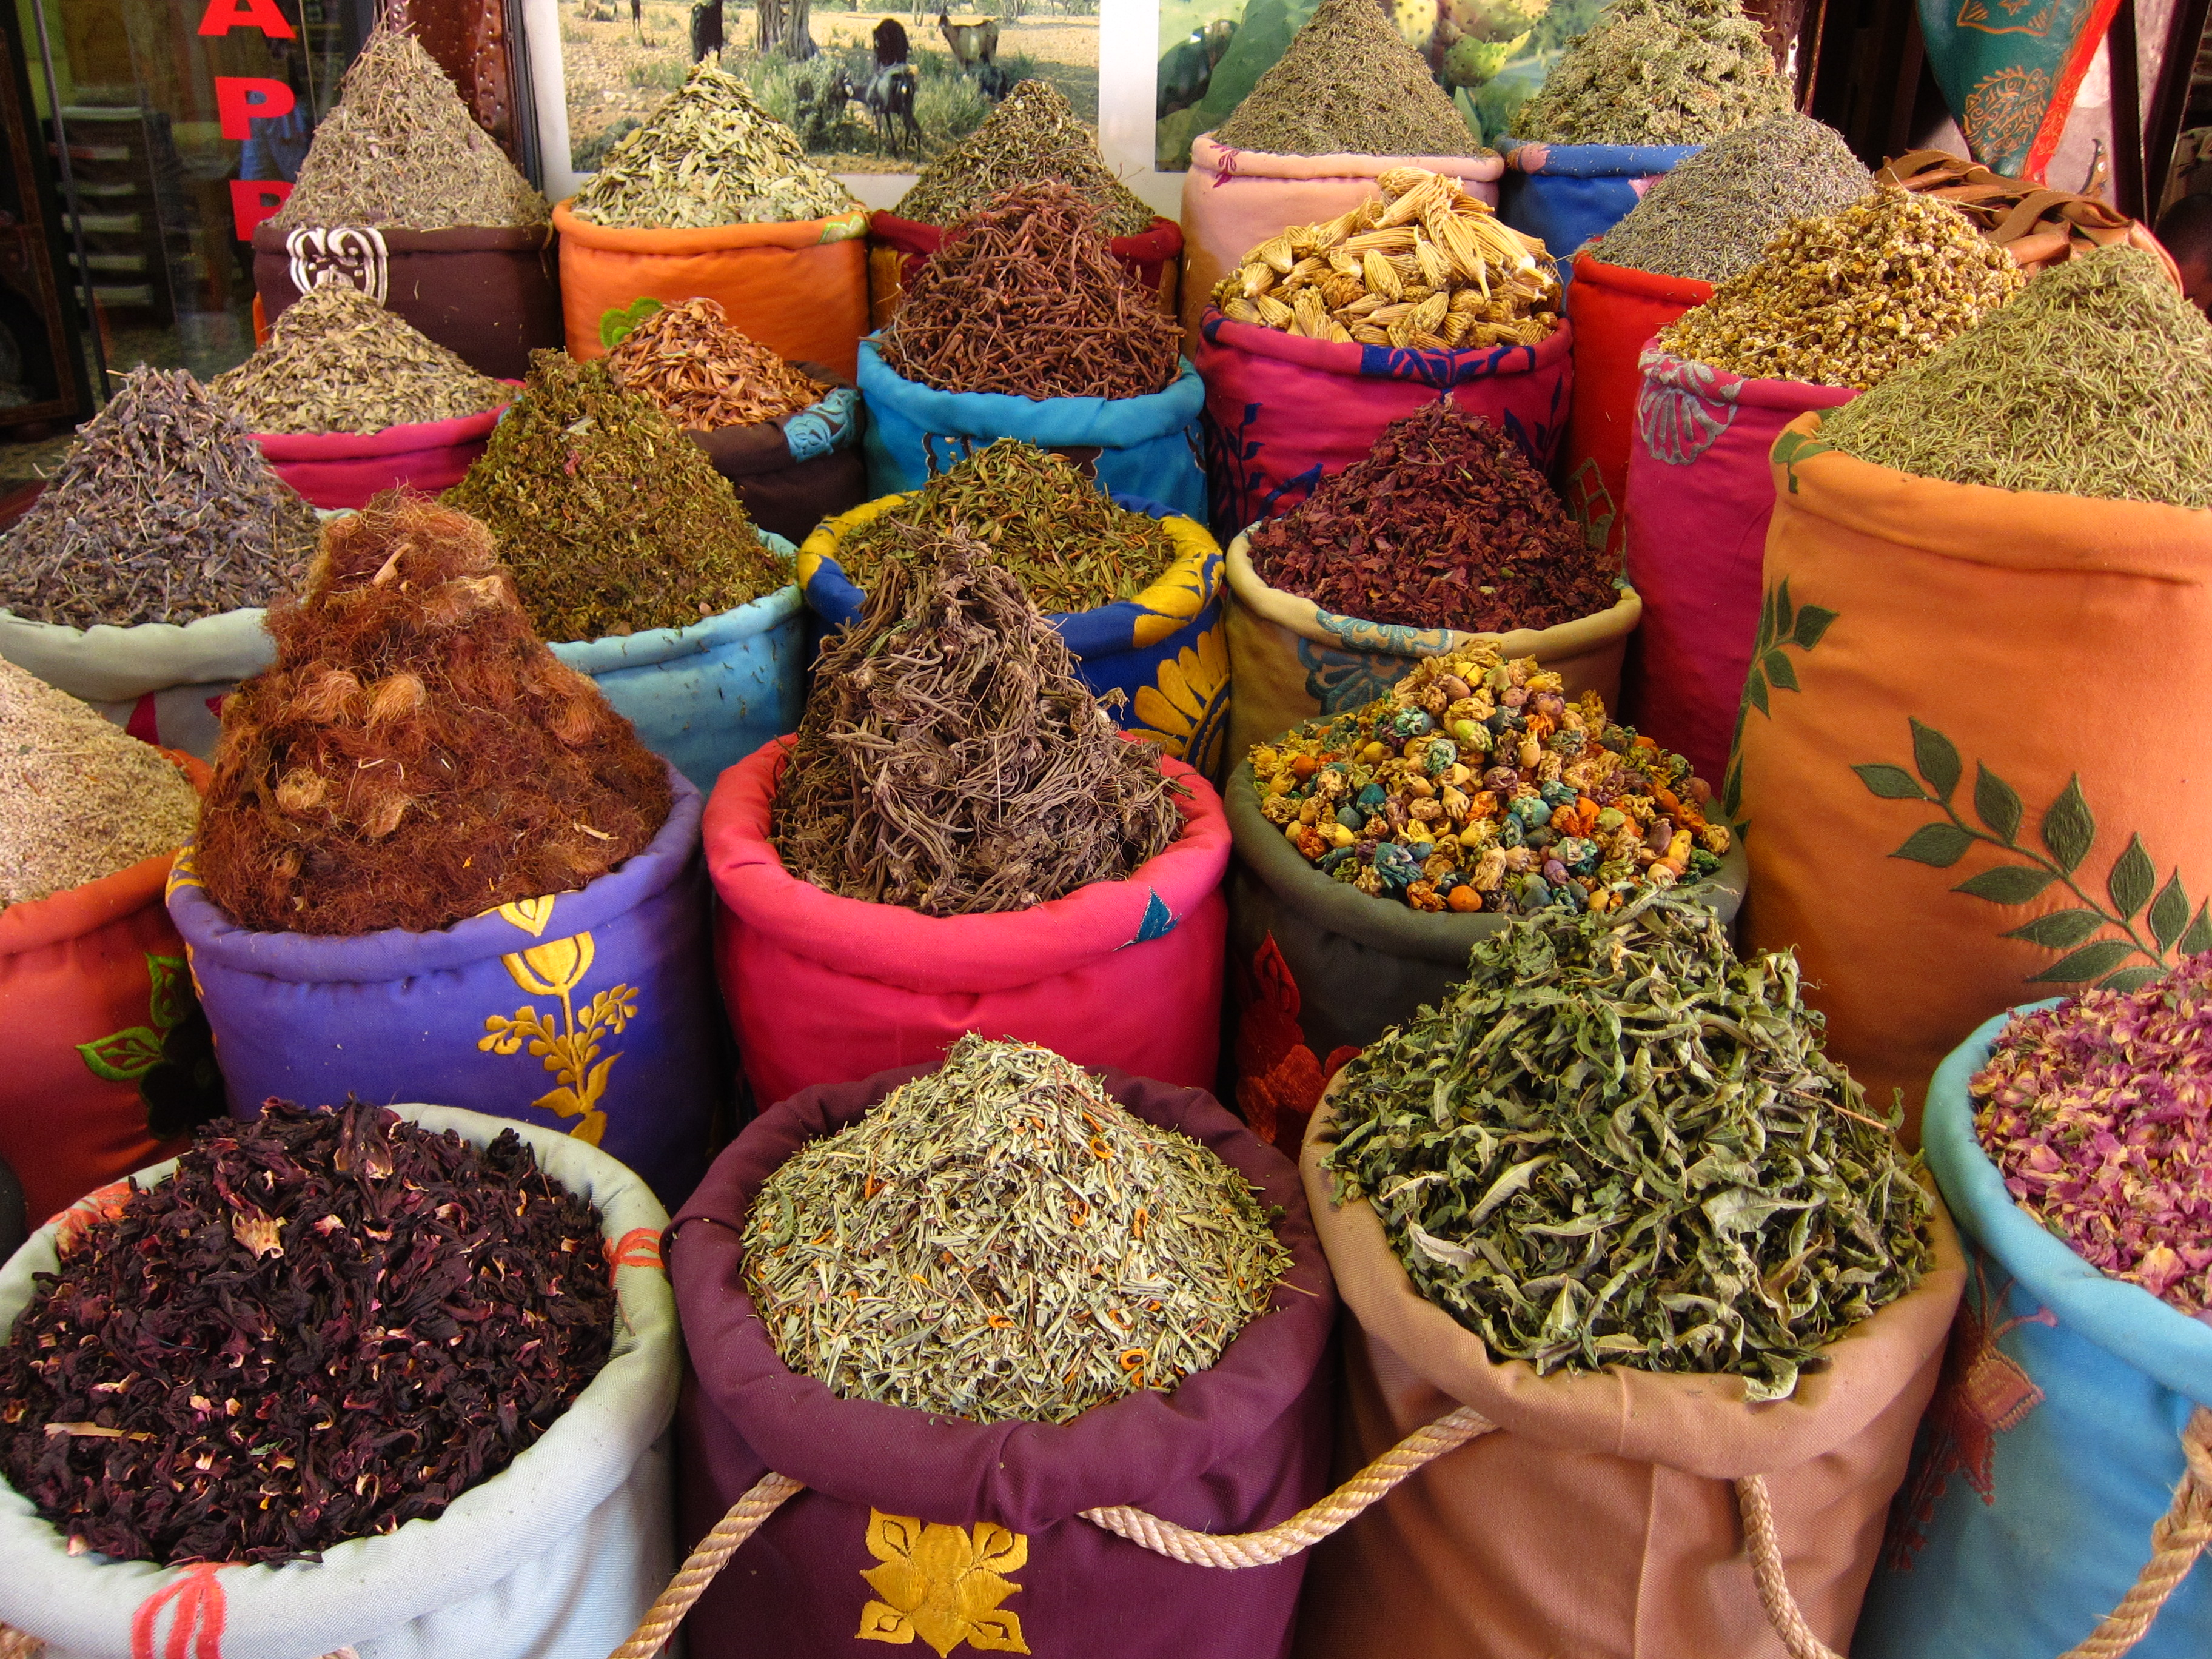 Wander the souks and you will find myriad herbs and spices for healing and cooking